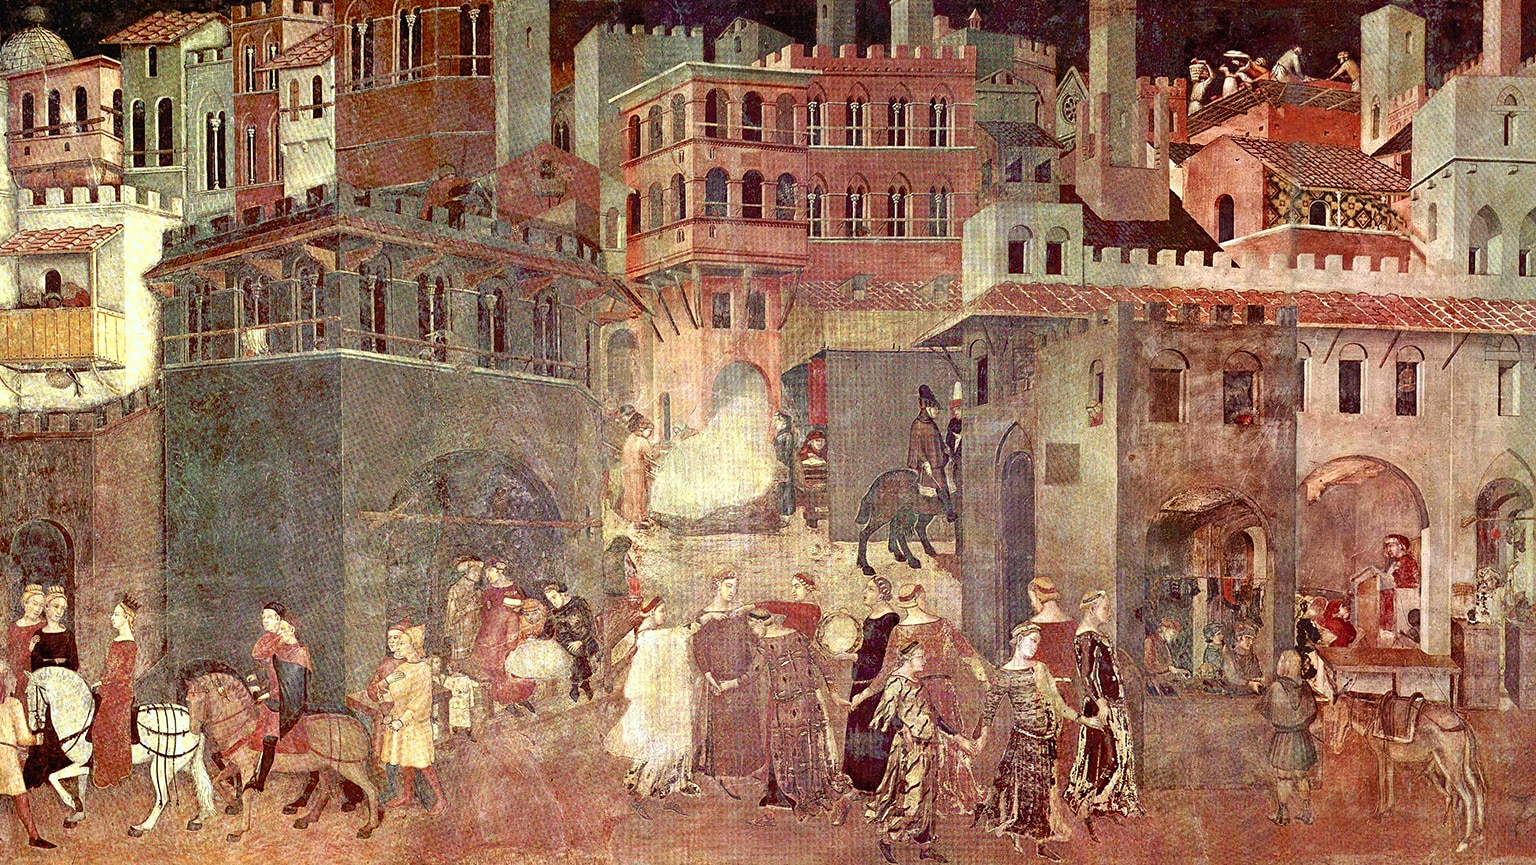 Sienese Art in the 14th Century